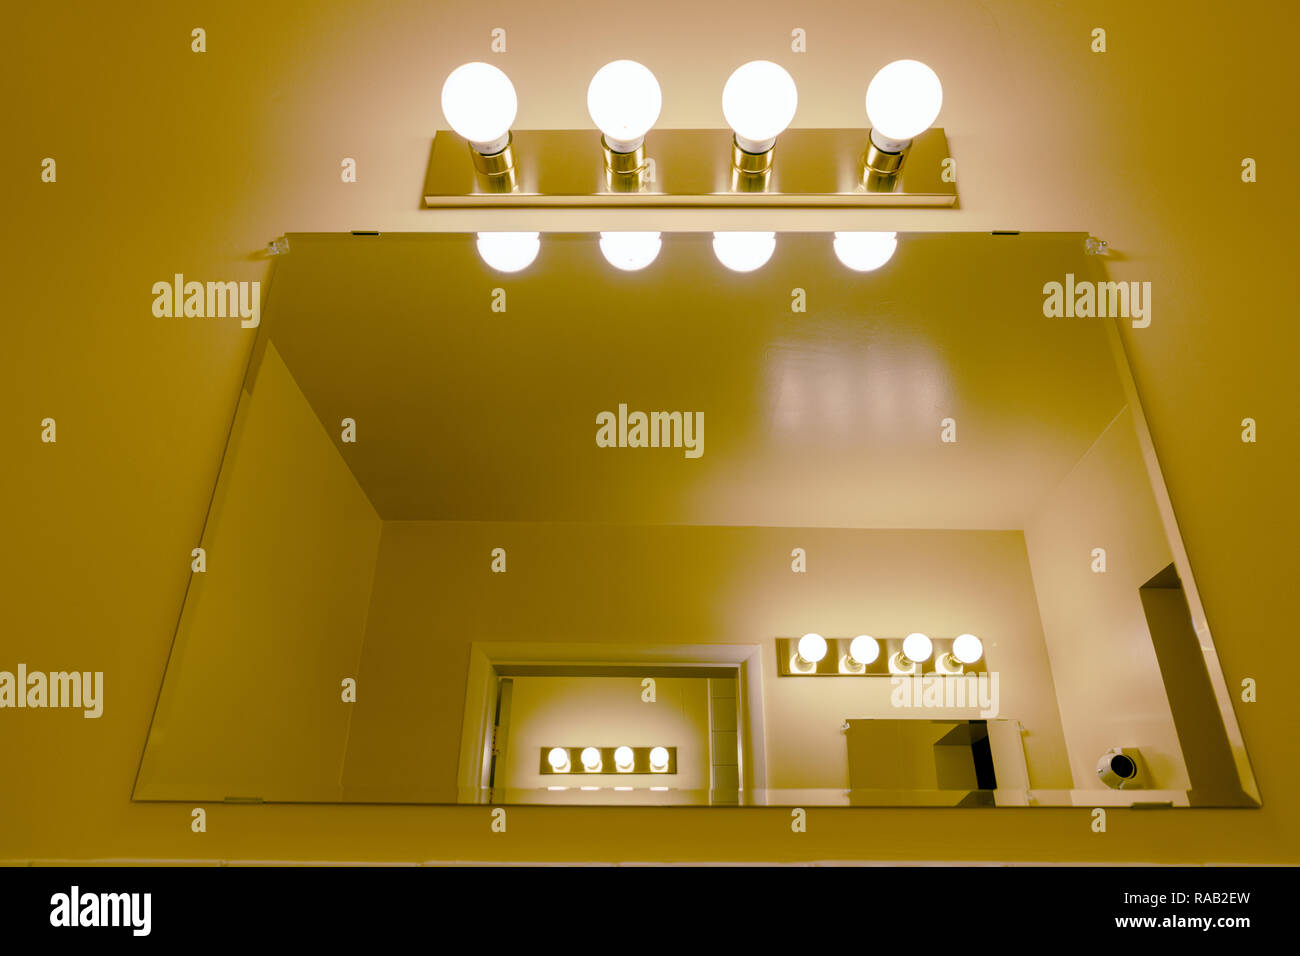 Light fixtures and mirrors - Stock Image